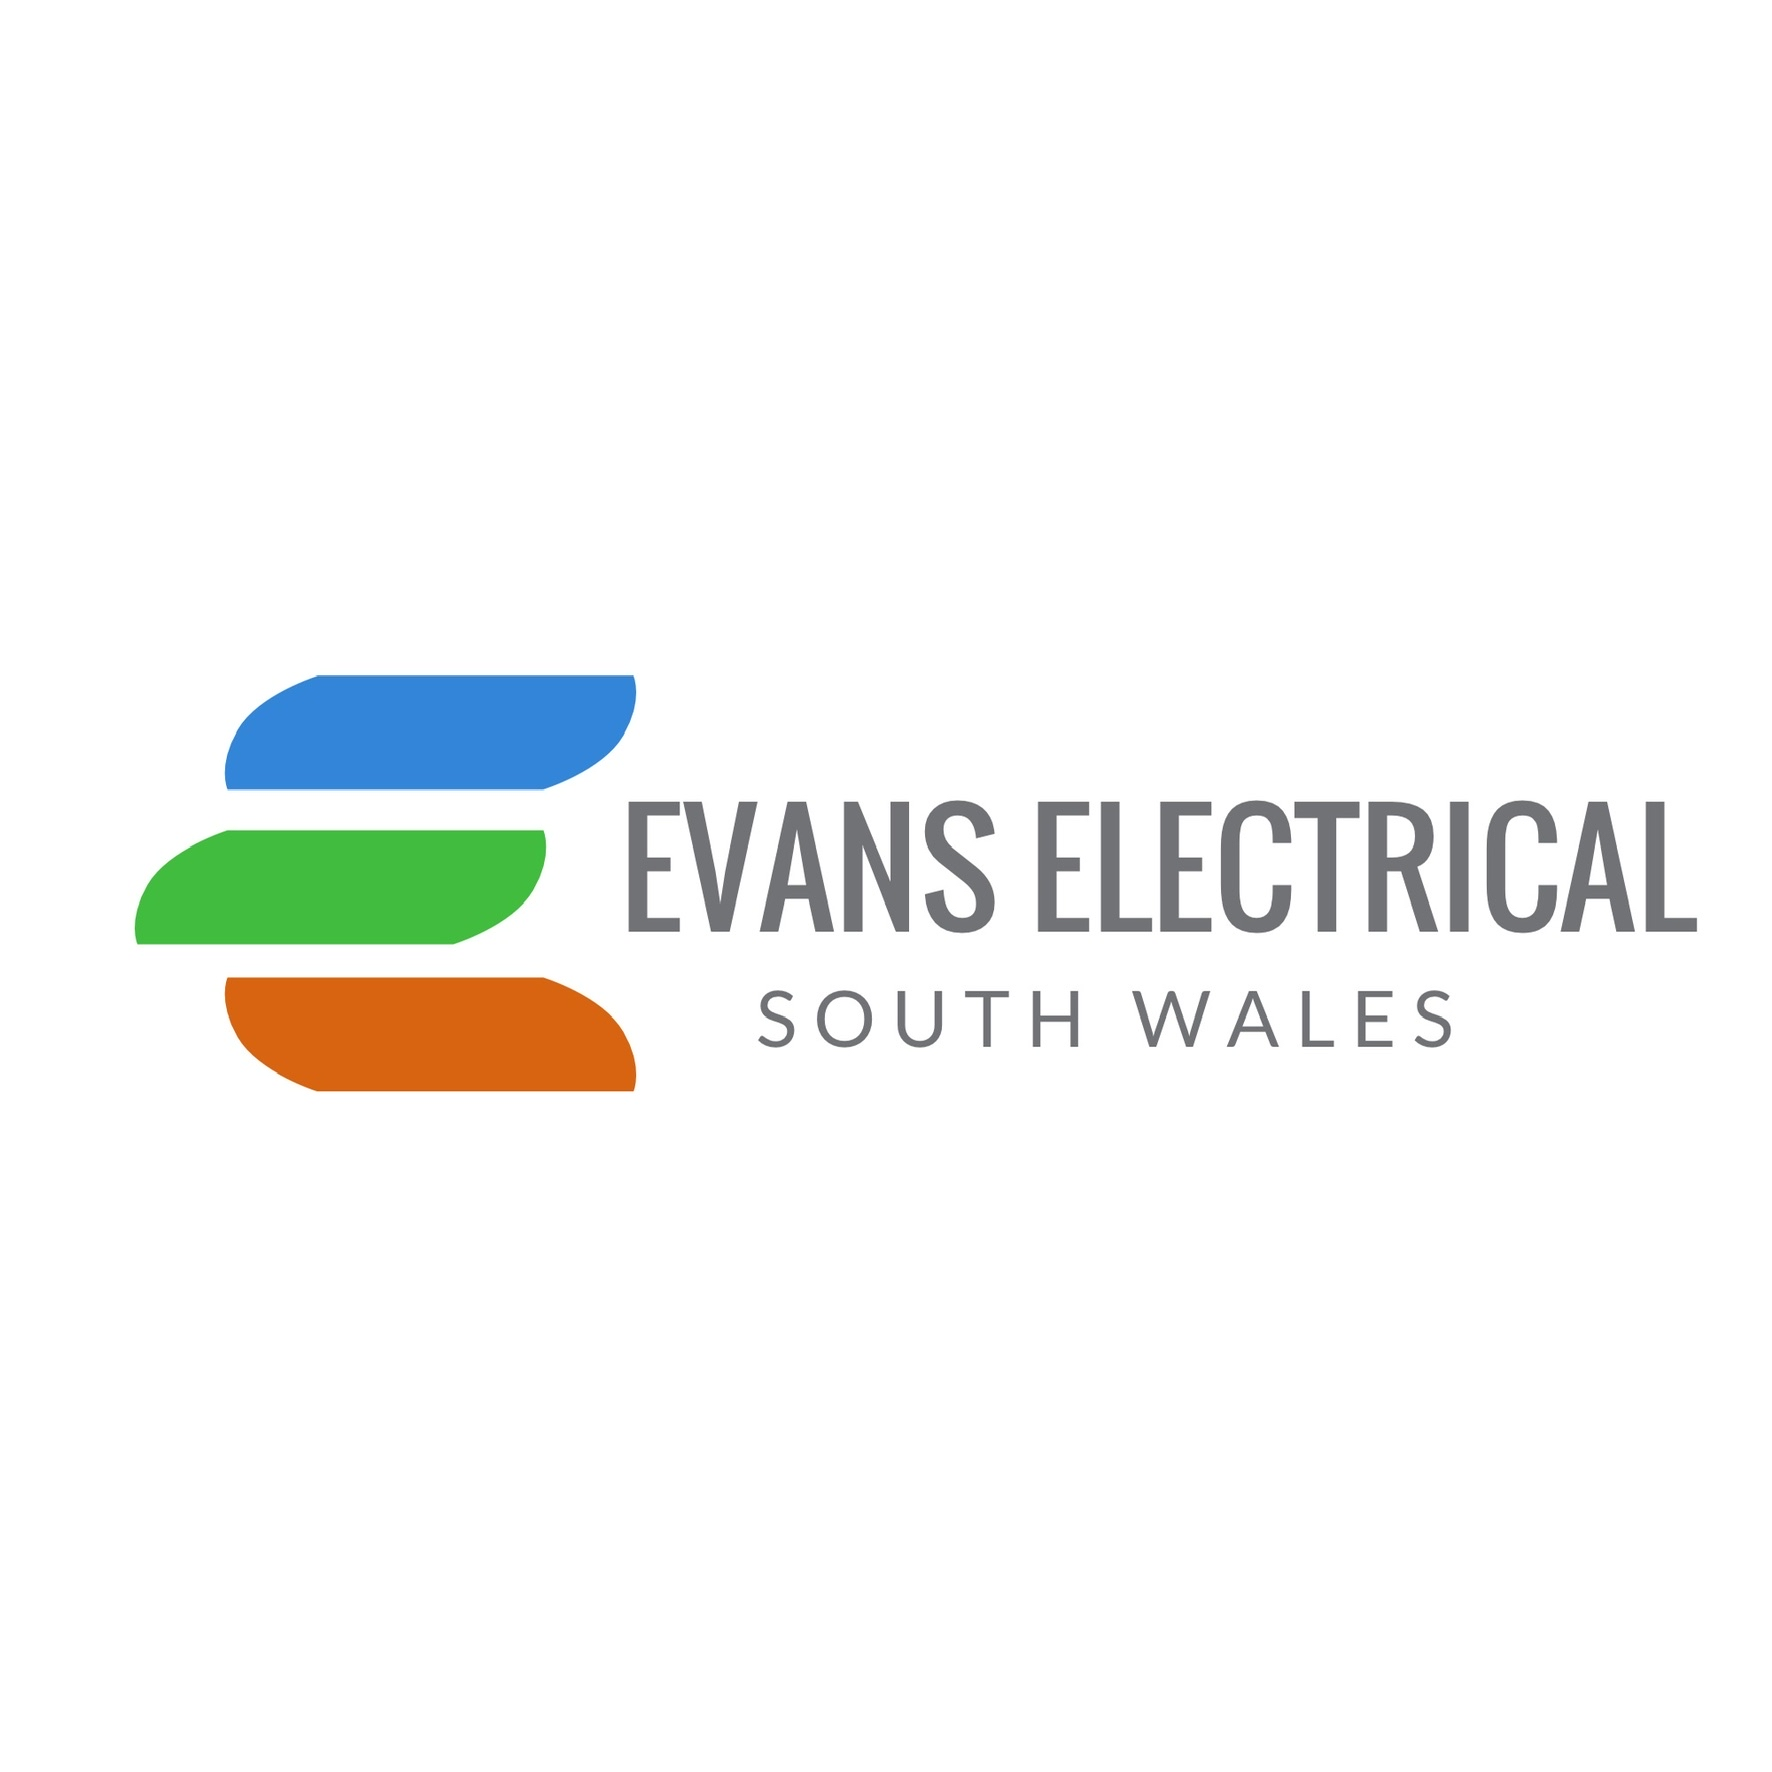 Evans Electrical South Wales Verified Logo